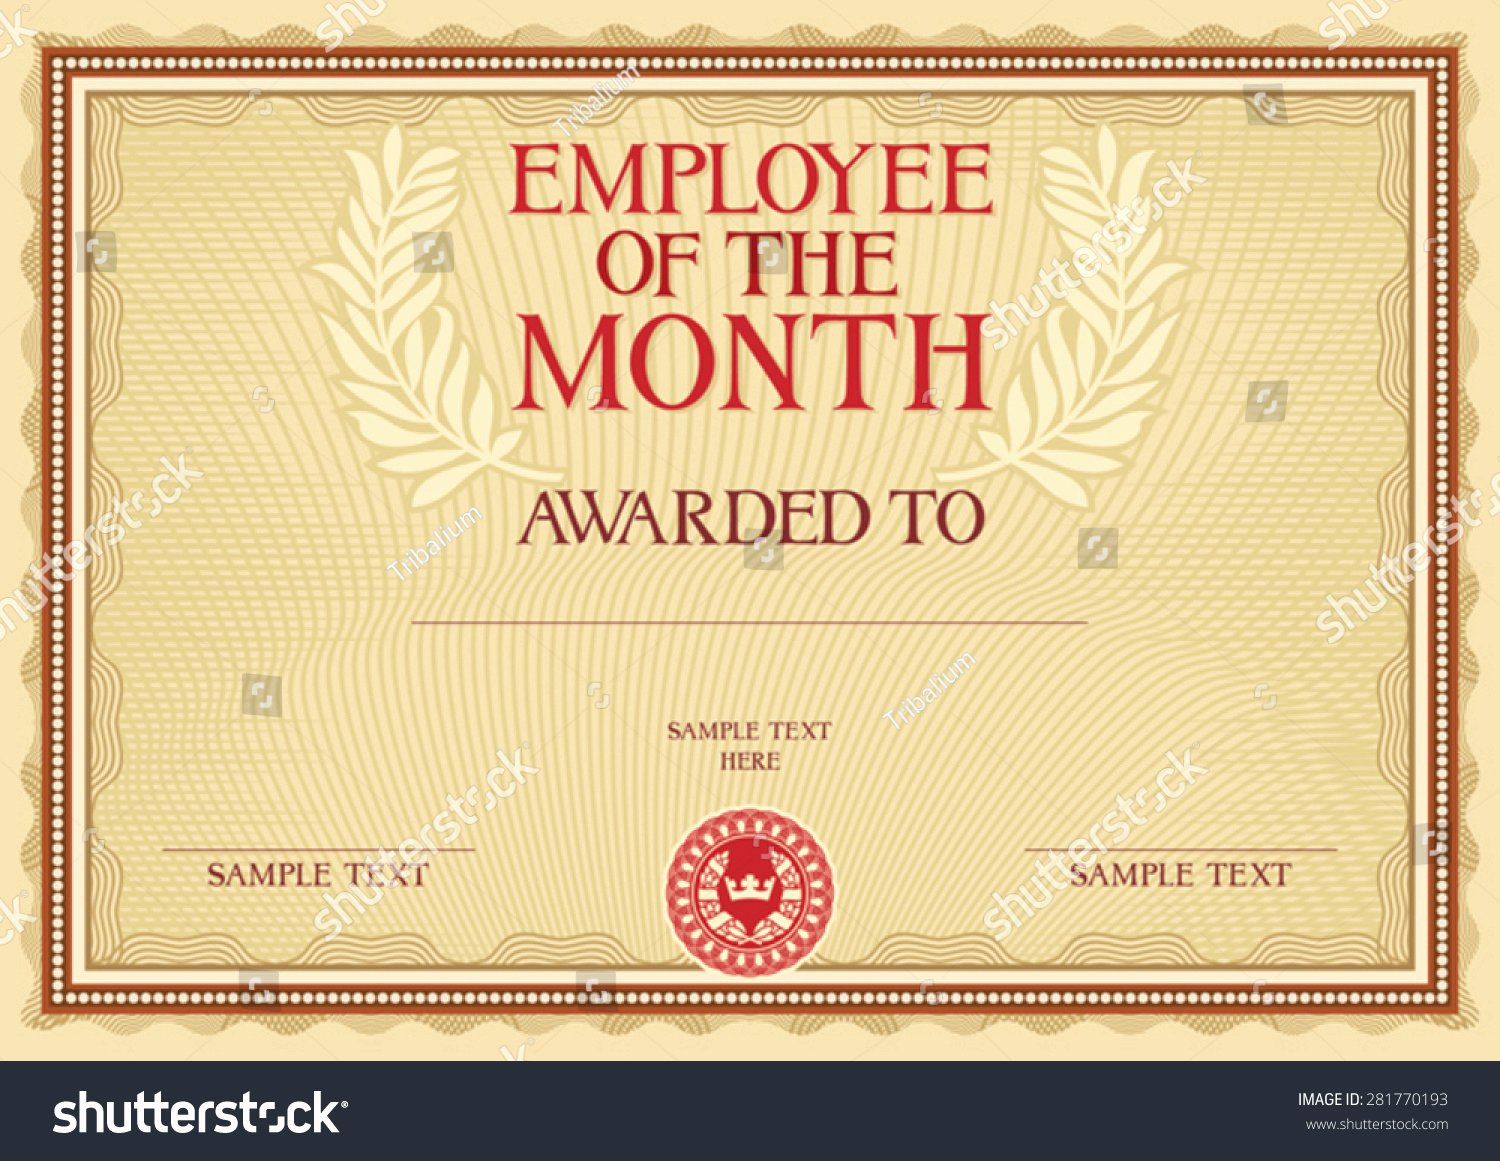 Employee Of the Month Online Best Of Line Image & Editor Shutterstock Editor